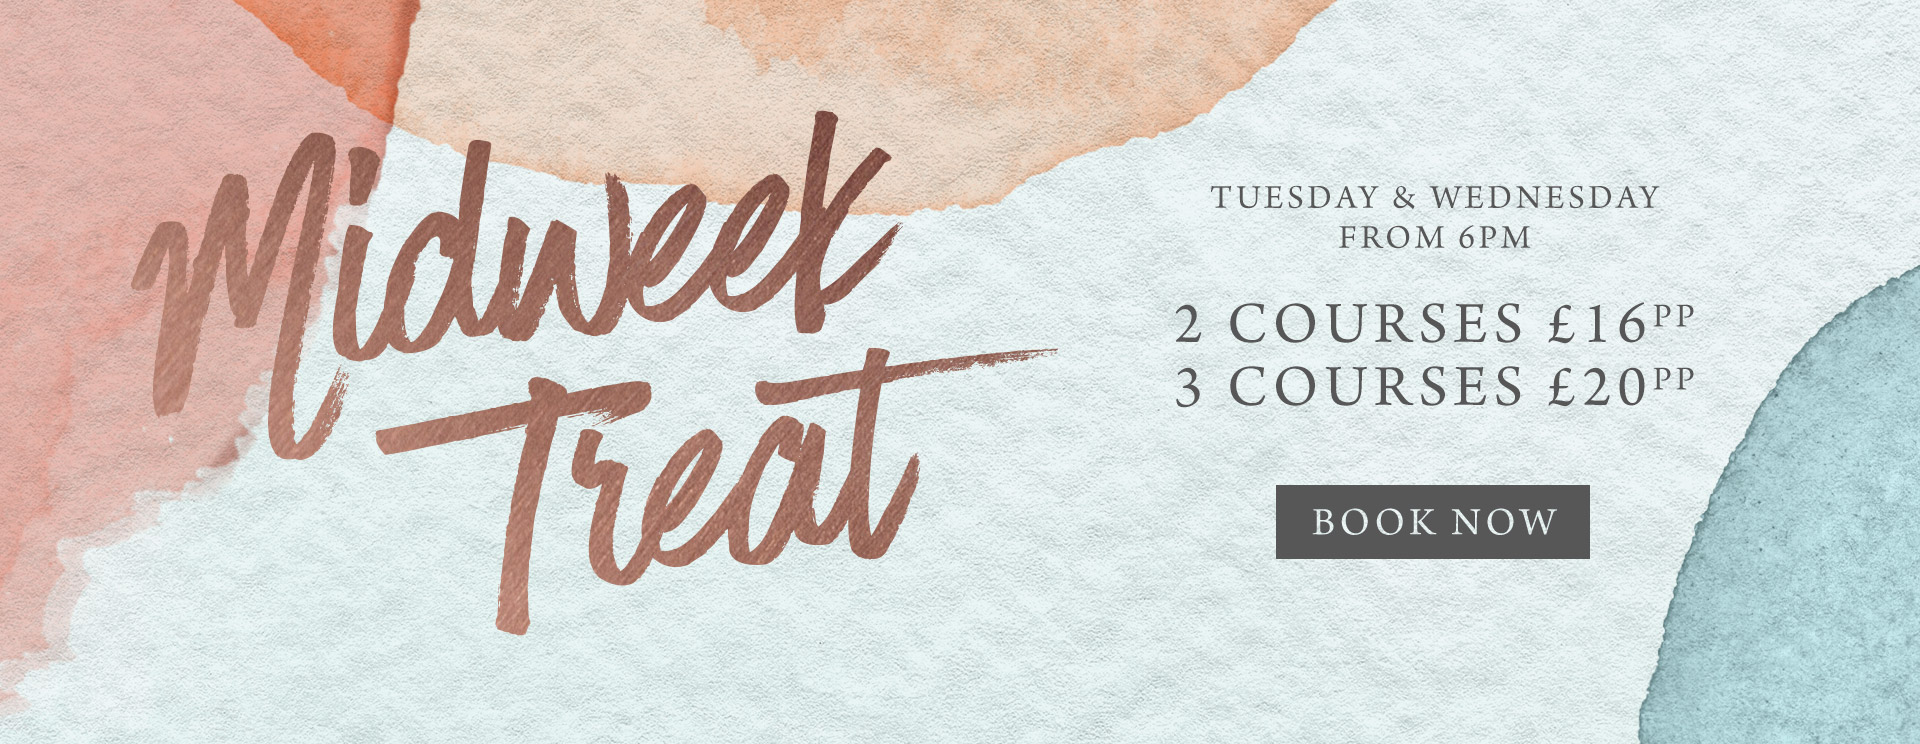 Midweek treat at The Bulls Head - Book now